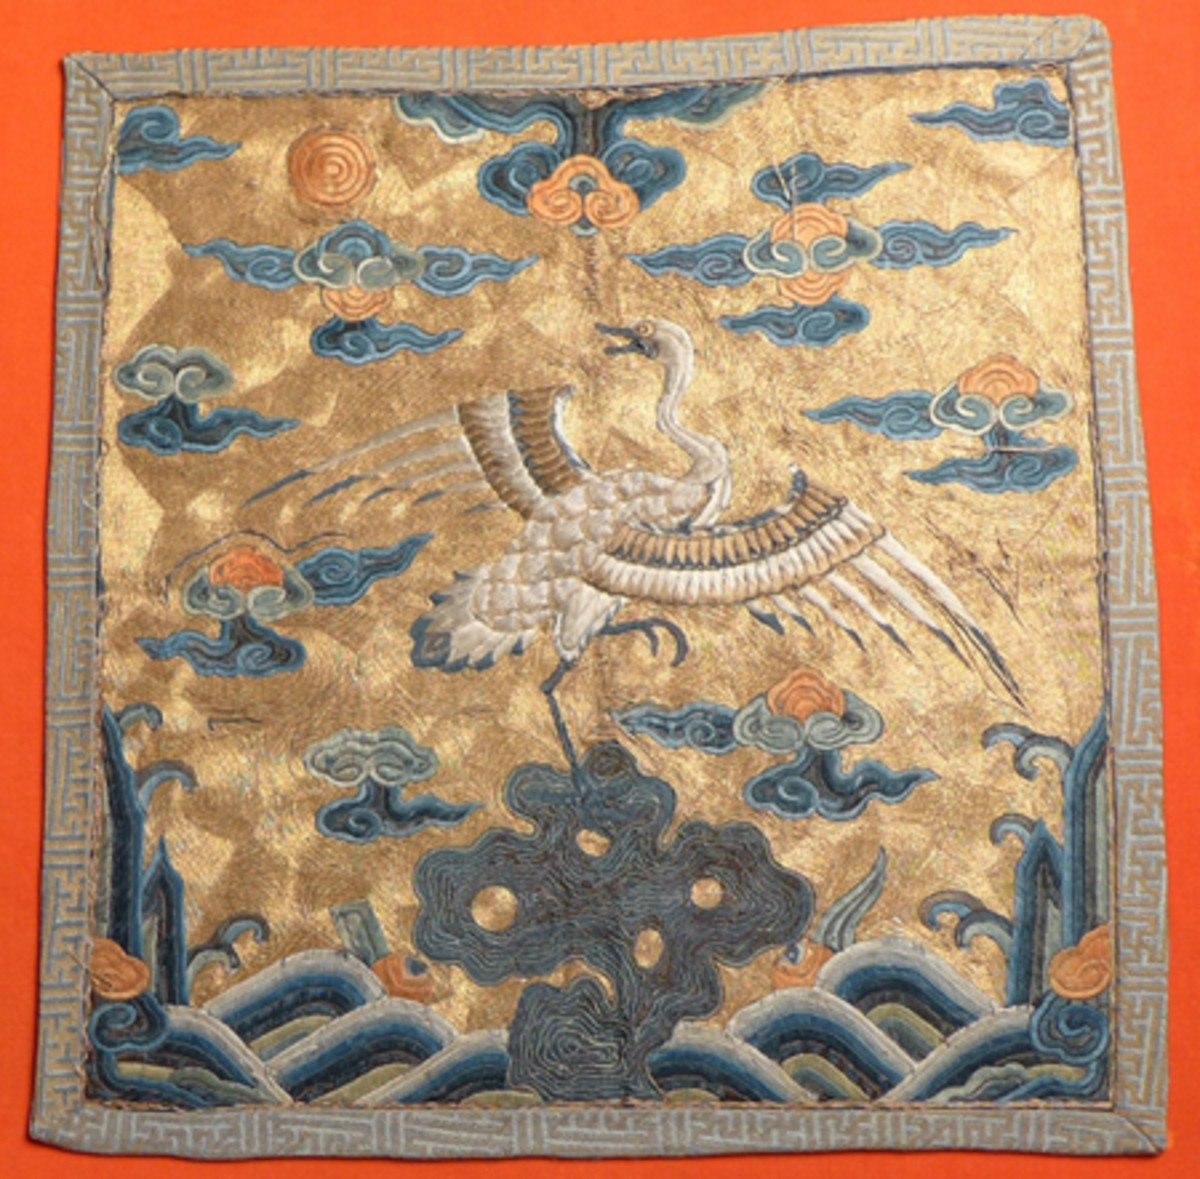 Chinese Imperial civil rank badge, embroidered with metallic silk threat, ex Gene Christian collection.